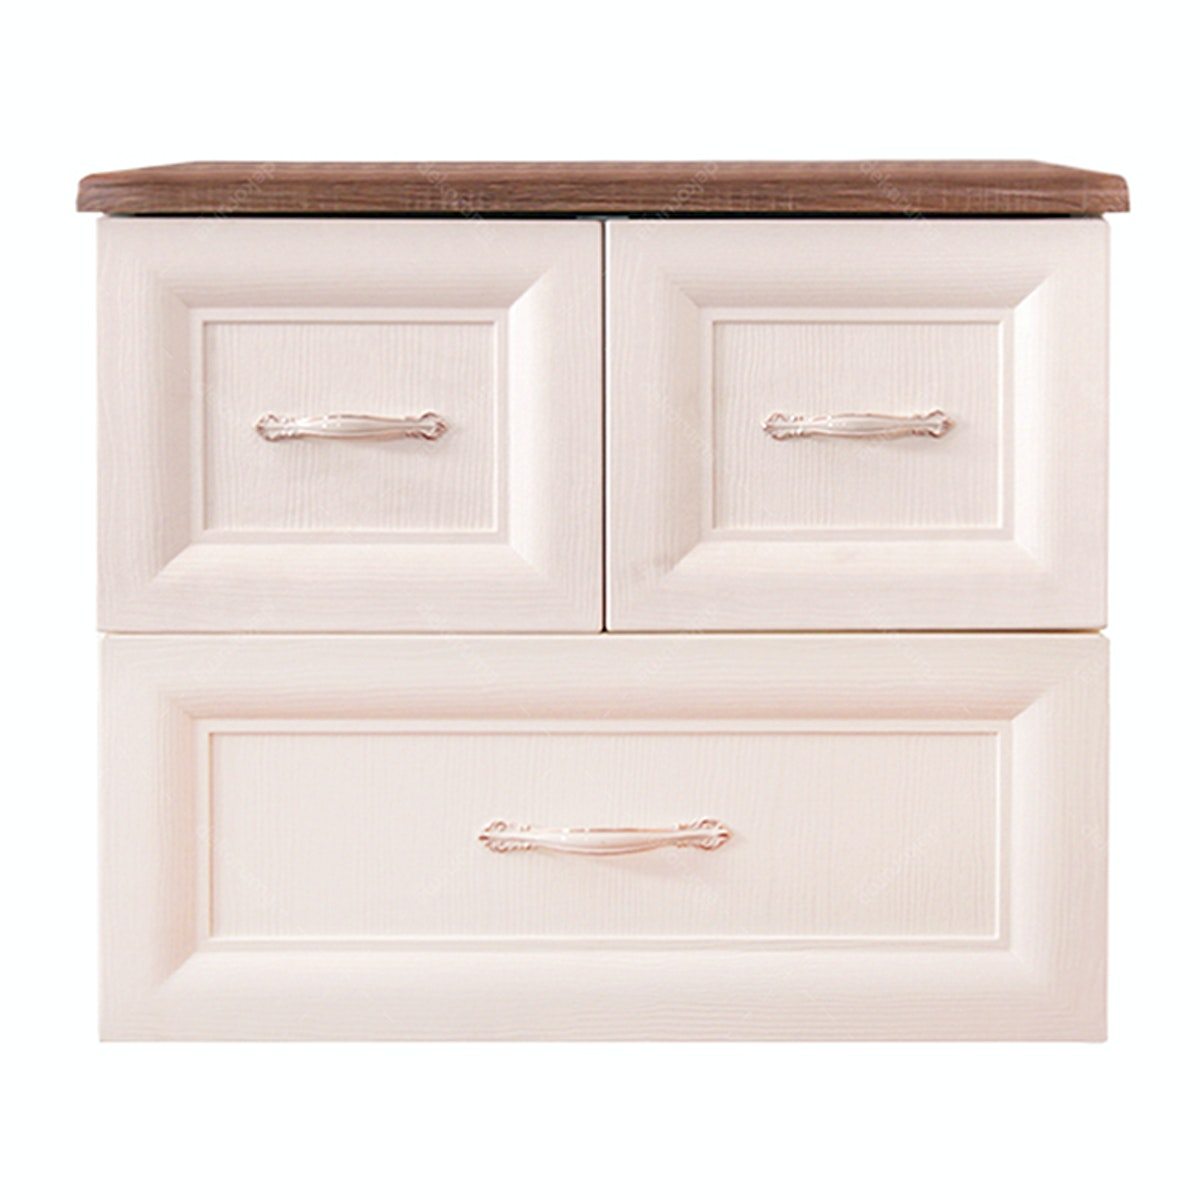 Olymplast Drawer Cabinet Classic ODC 02-CB